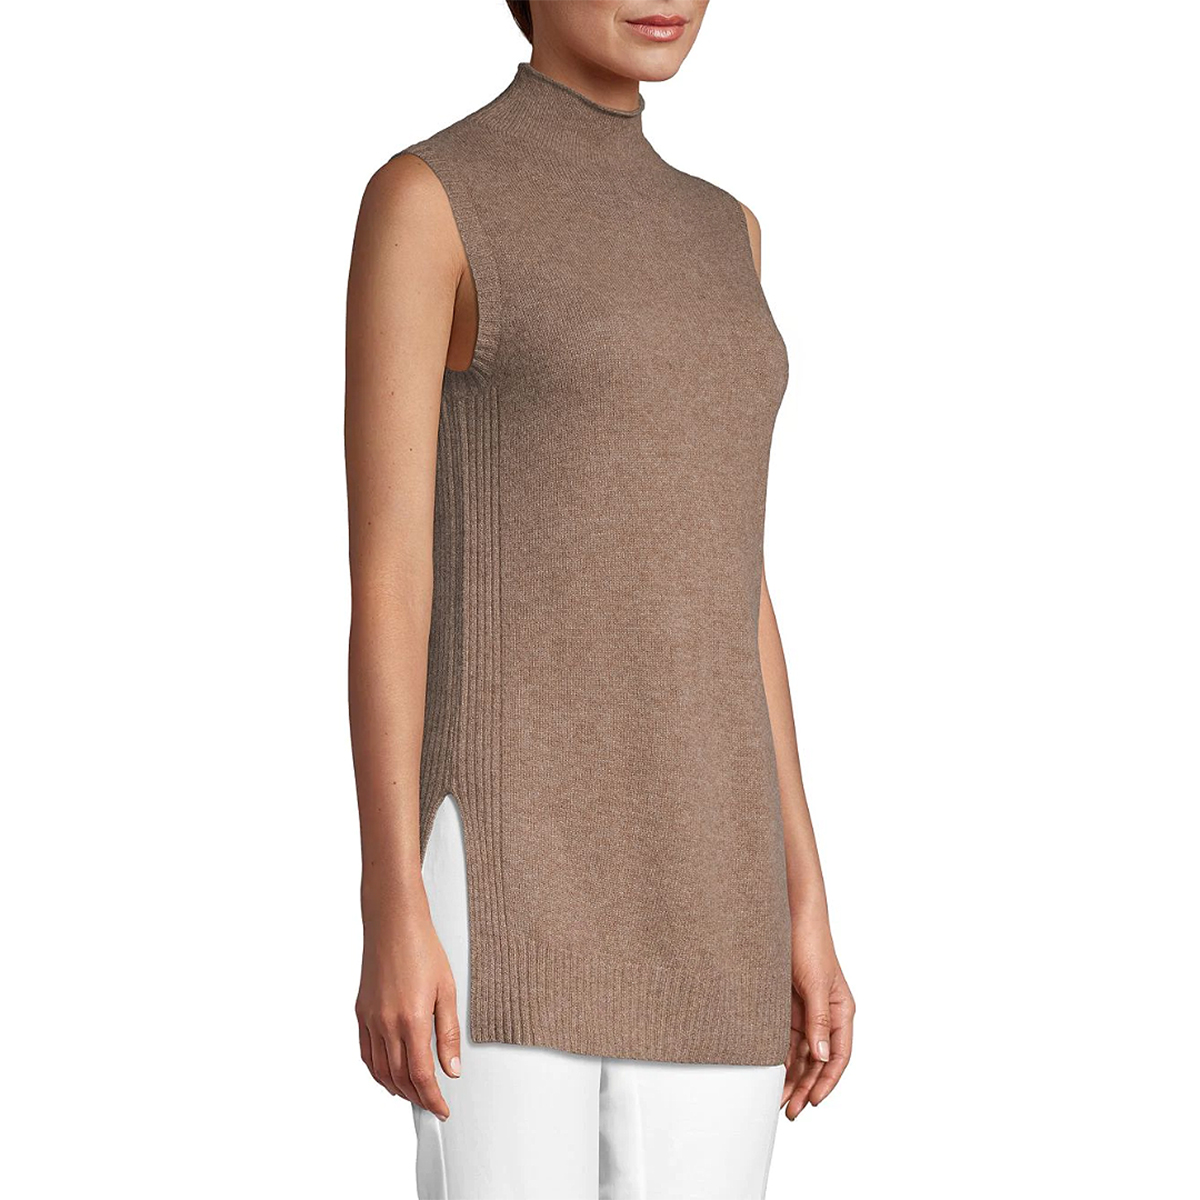 Cashmere Saks Fifth Avenue Turtleneck Cashmere Top